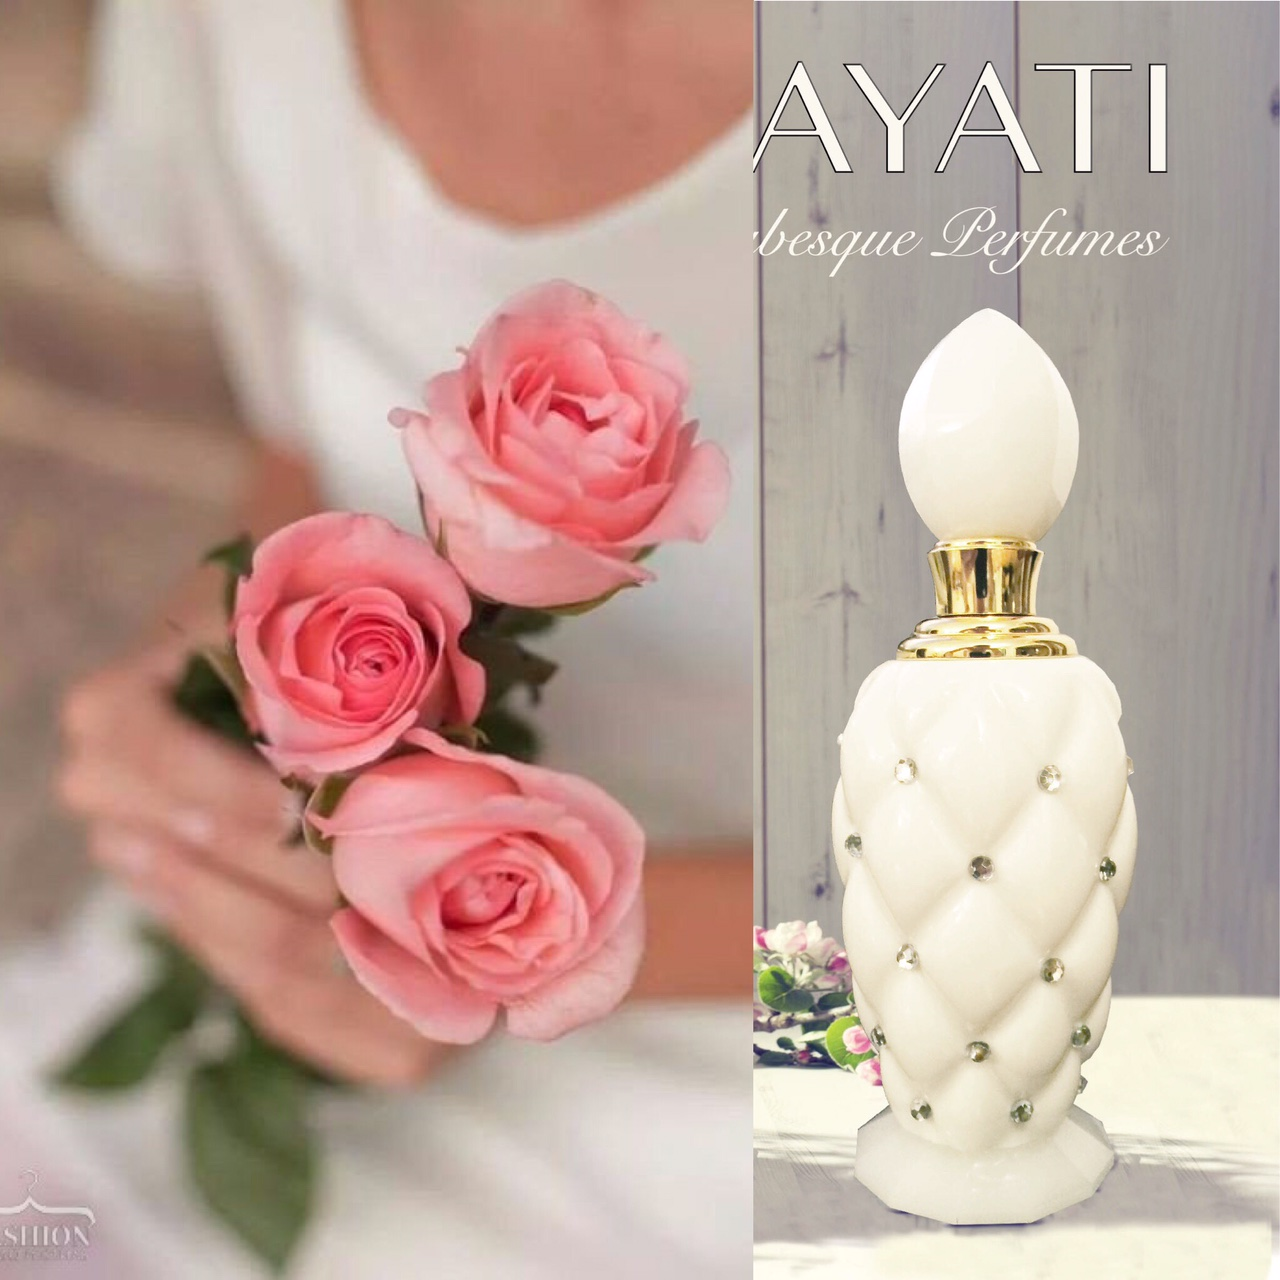 MUSK HAYATI, 12мл, Arabesque Perfumes